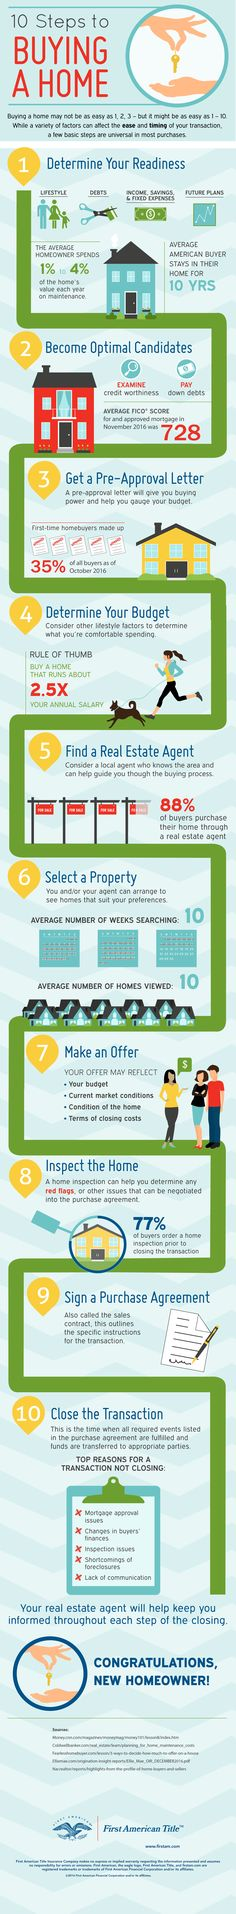 Infographic of 10 Steps to Buying a Home